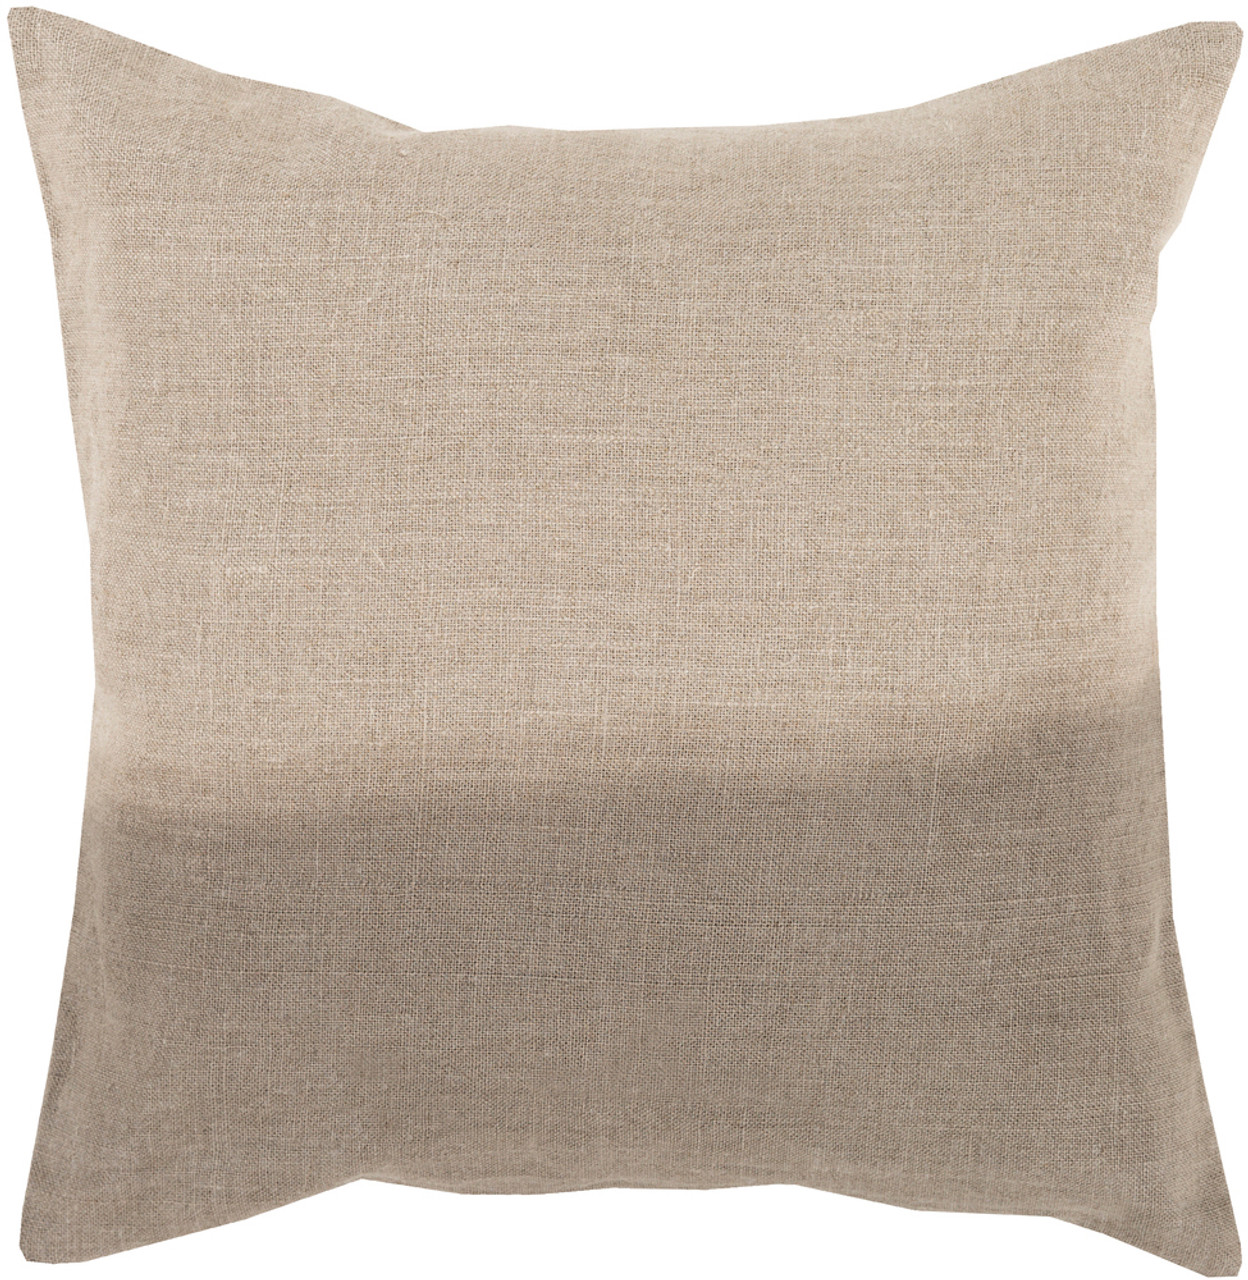 SET OF 2 Throw Pillows 18x18 20x20 or 22x22 Square Genuine Leather Accent